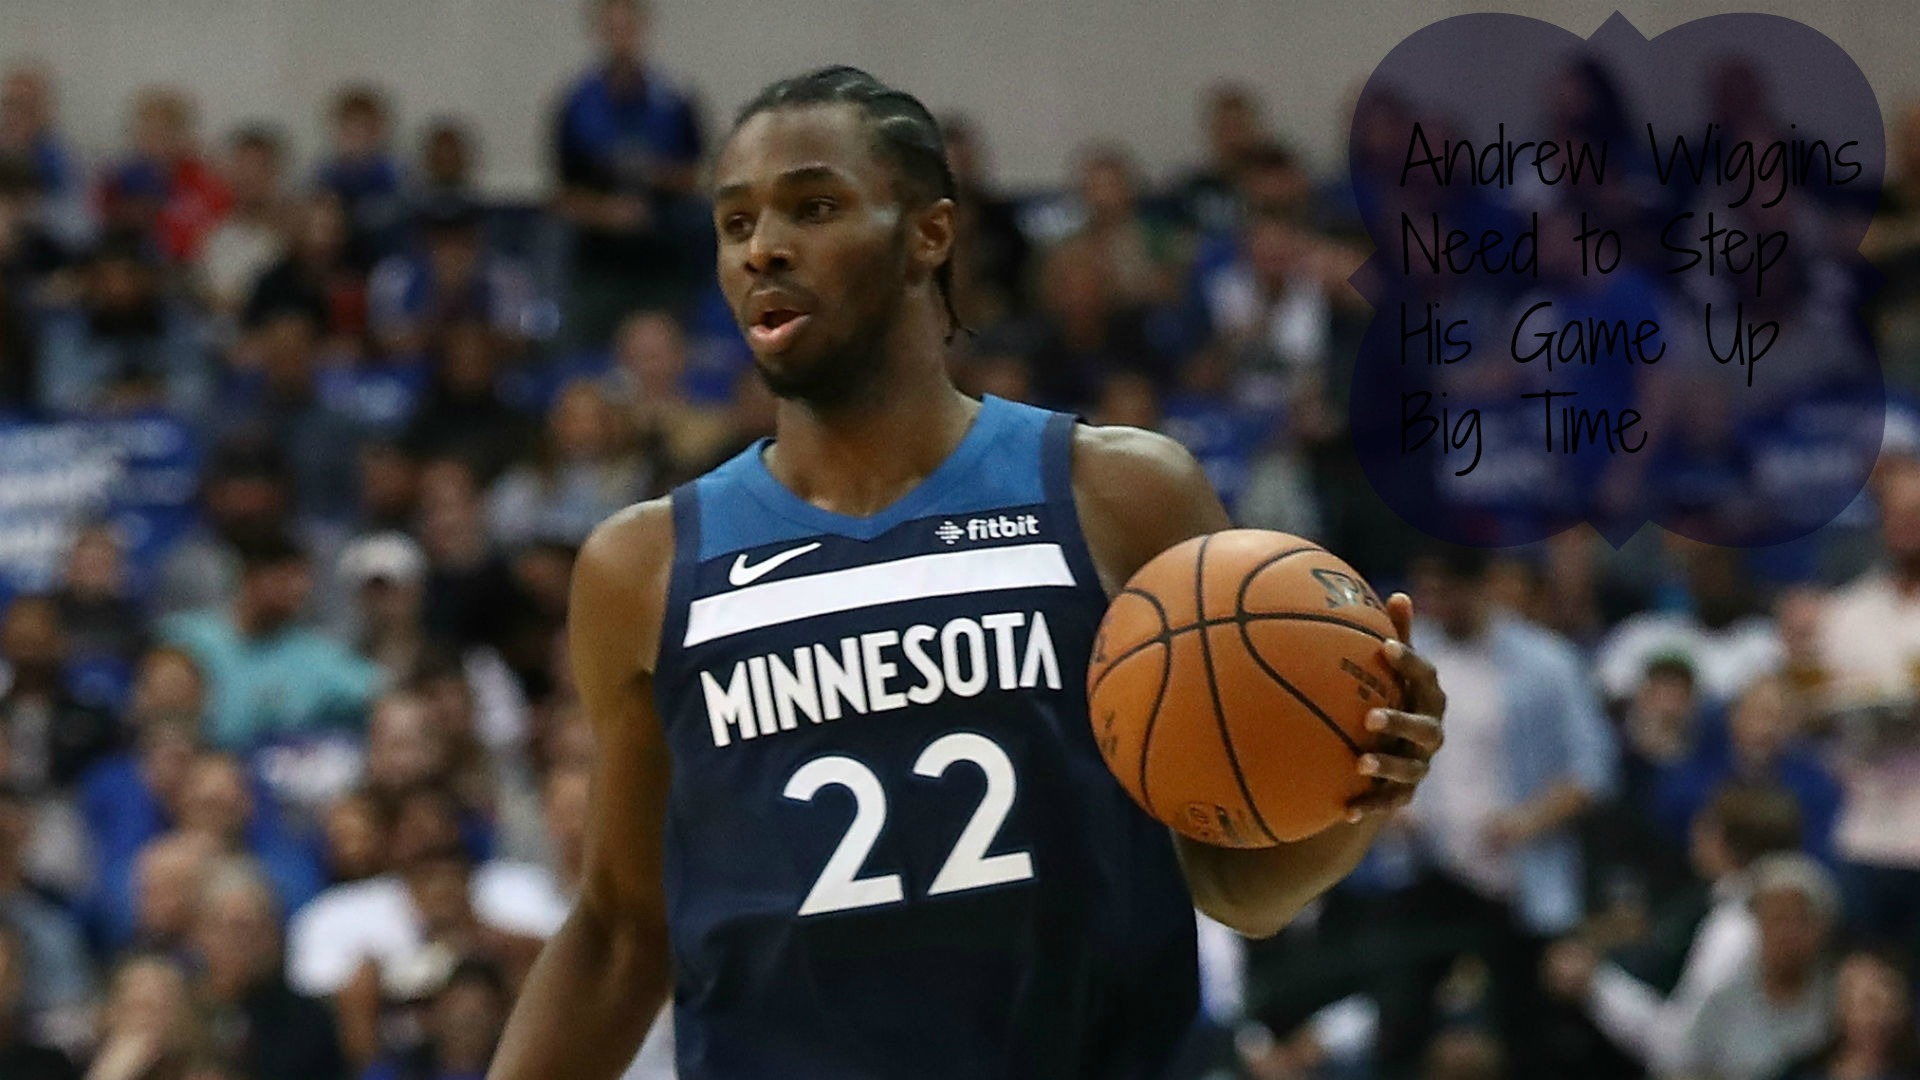 Andrew Wiggins Need to Step His Game Up Big Time